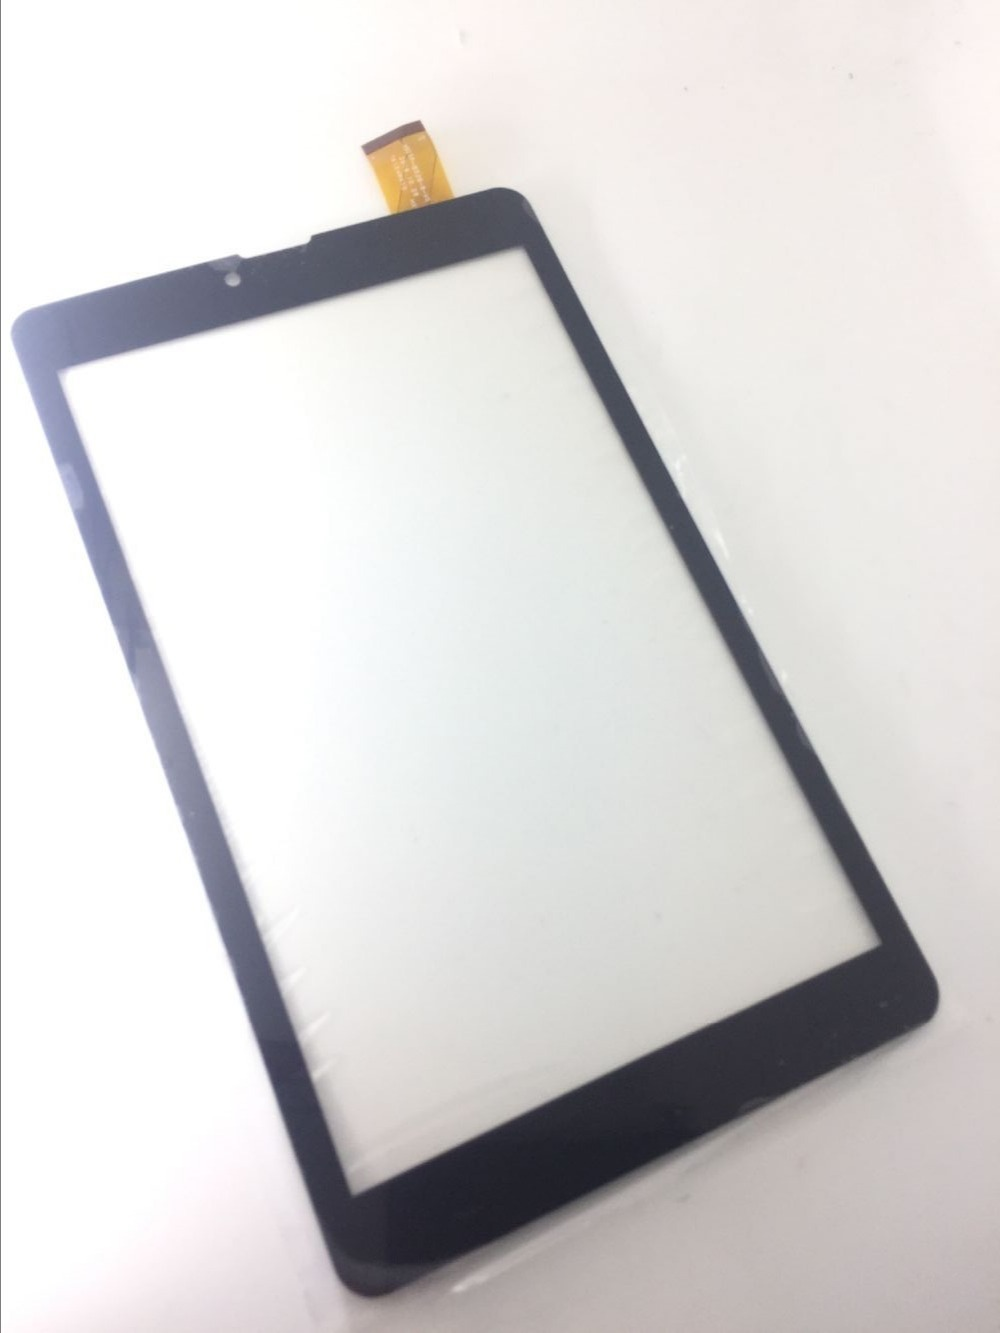 For DIGMA OPTIMA 8006S 3G TS8090PG Tablet Touch Screen 8 inch PC Touch Panel Digitizer Glass MID Sensor Free Shipping original 7 inch treelogic gravis 73 3g gps digma idn7 3g tablet pc touch screen digitizer glass touch panel free shipping